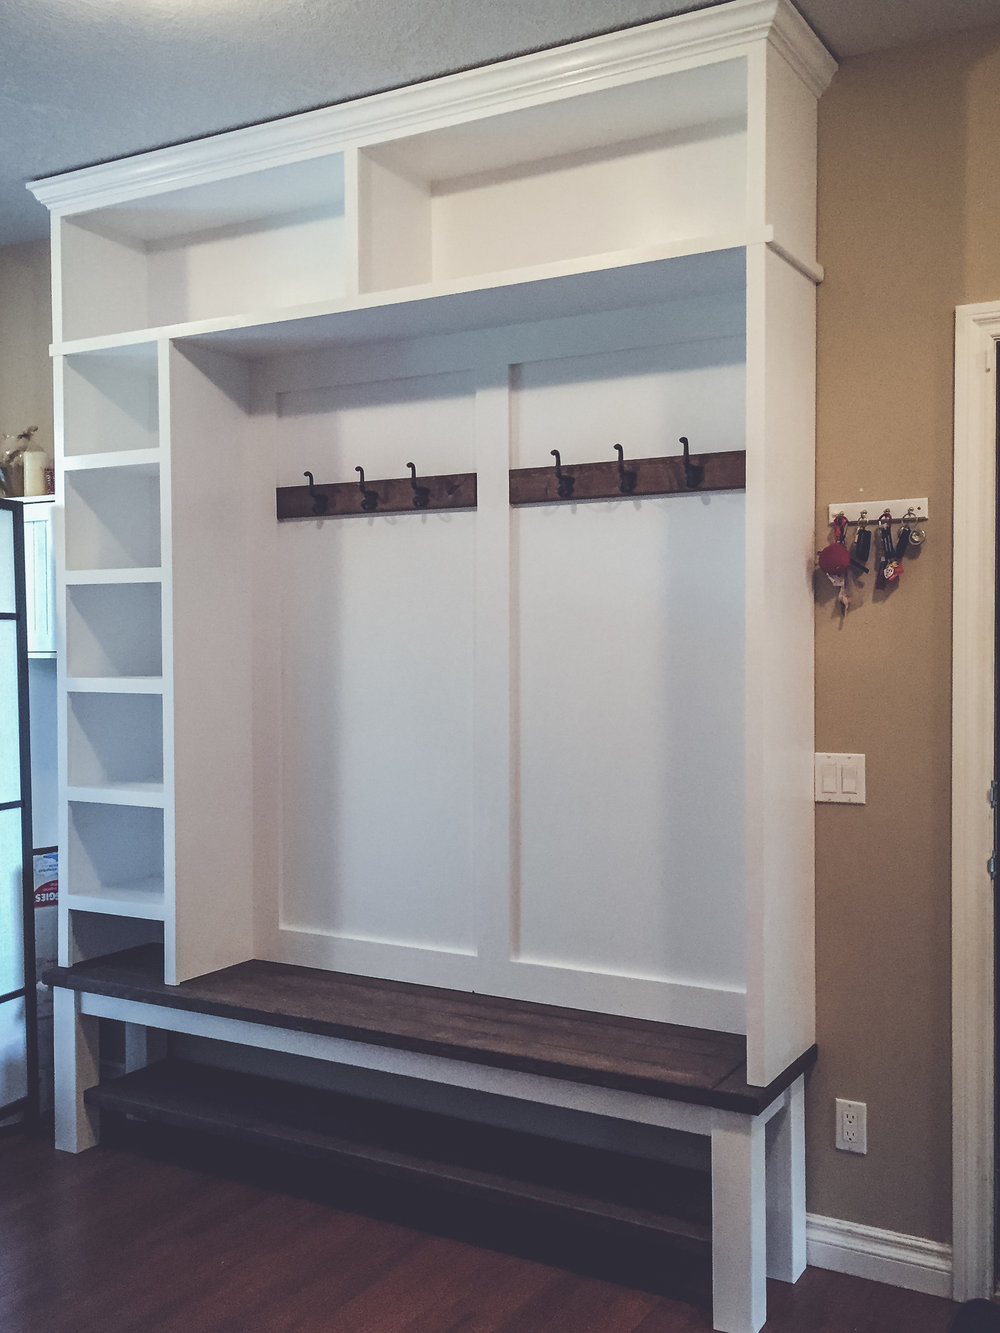 Over 8 ft tall! - Side cubbies help with organizing seasonal wear.